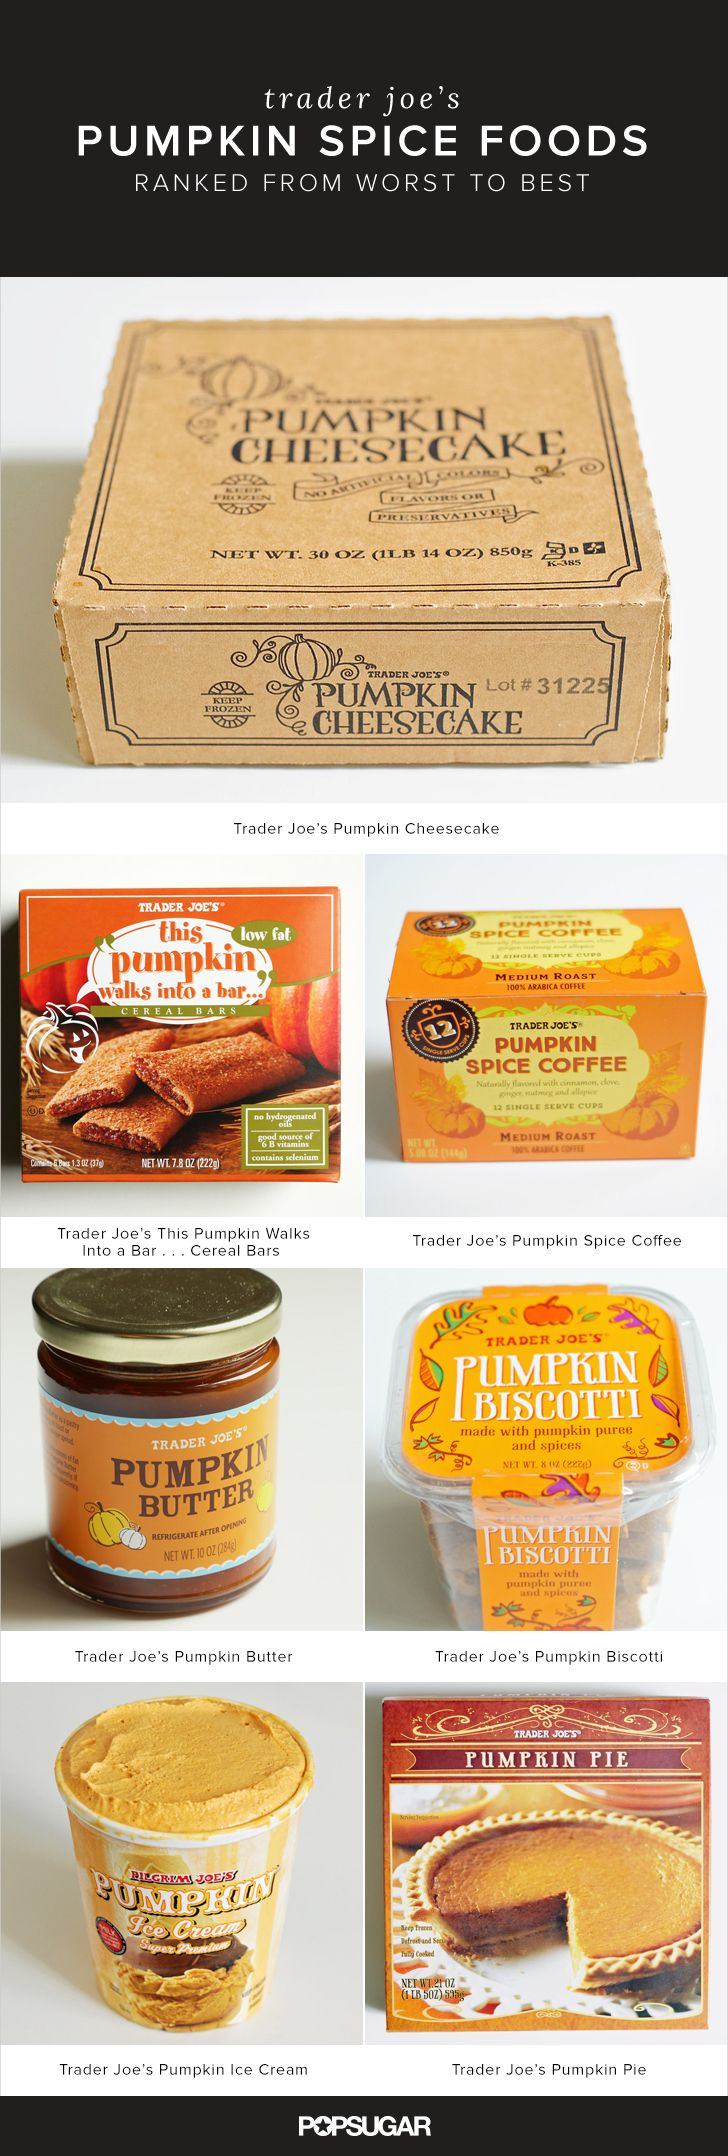 Trader Joe's goes hard on the pumpkin spice offerings, tapping into the obsession. So far, we've sampled 16 seasonal products; some are solid, others, not so much. Keep reading to see which are worth tossing in your shopping cart and which are best left behind.